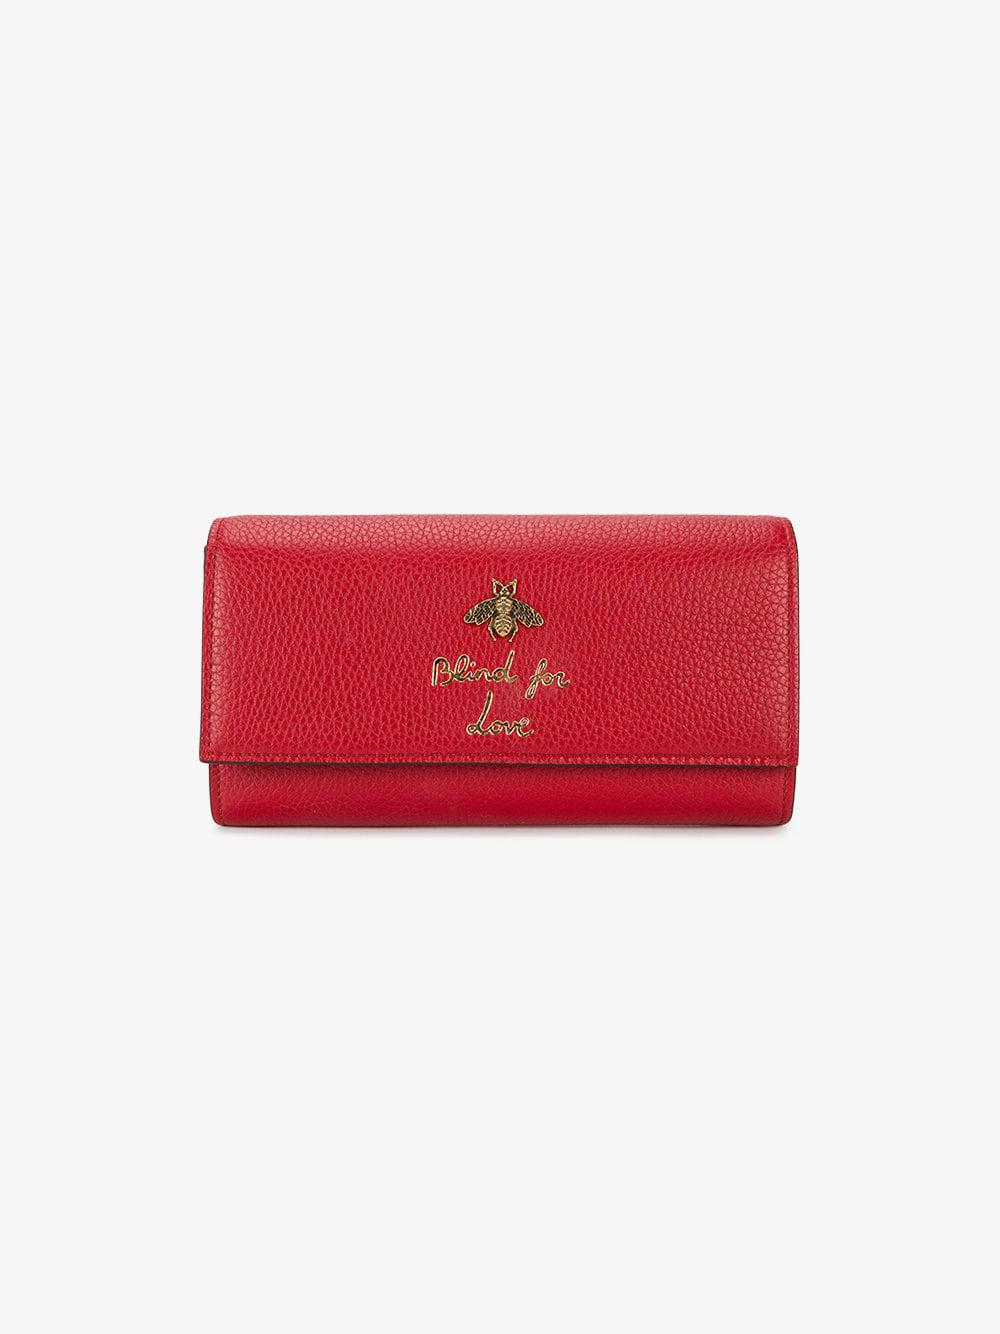 1abe8b7120081d Gucci Blind For Love Wallet in White - Lyst